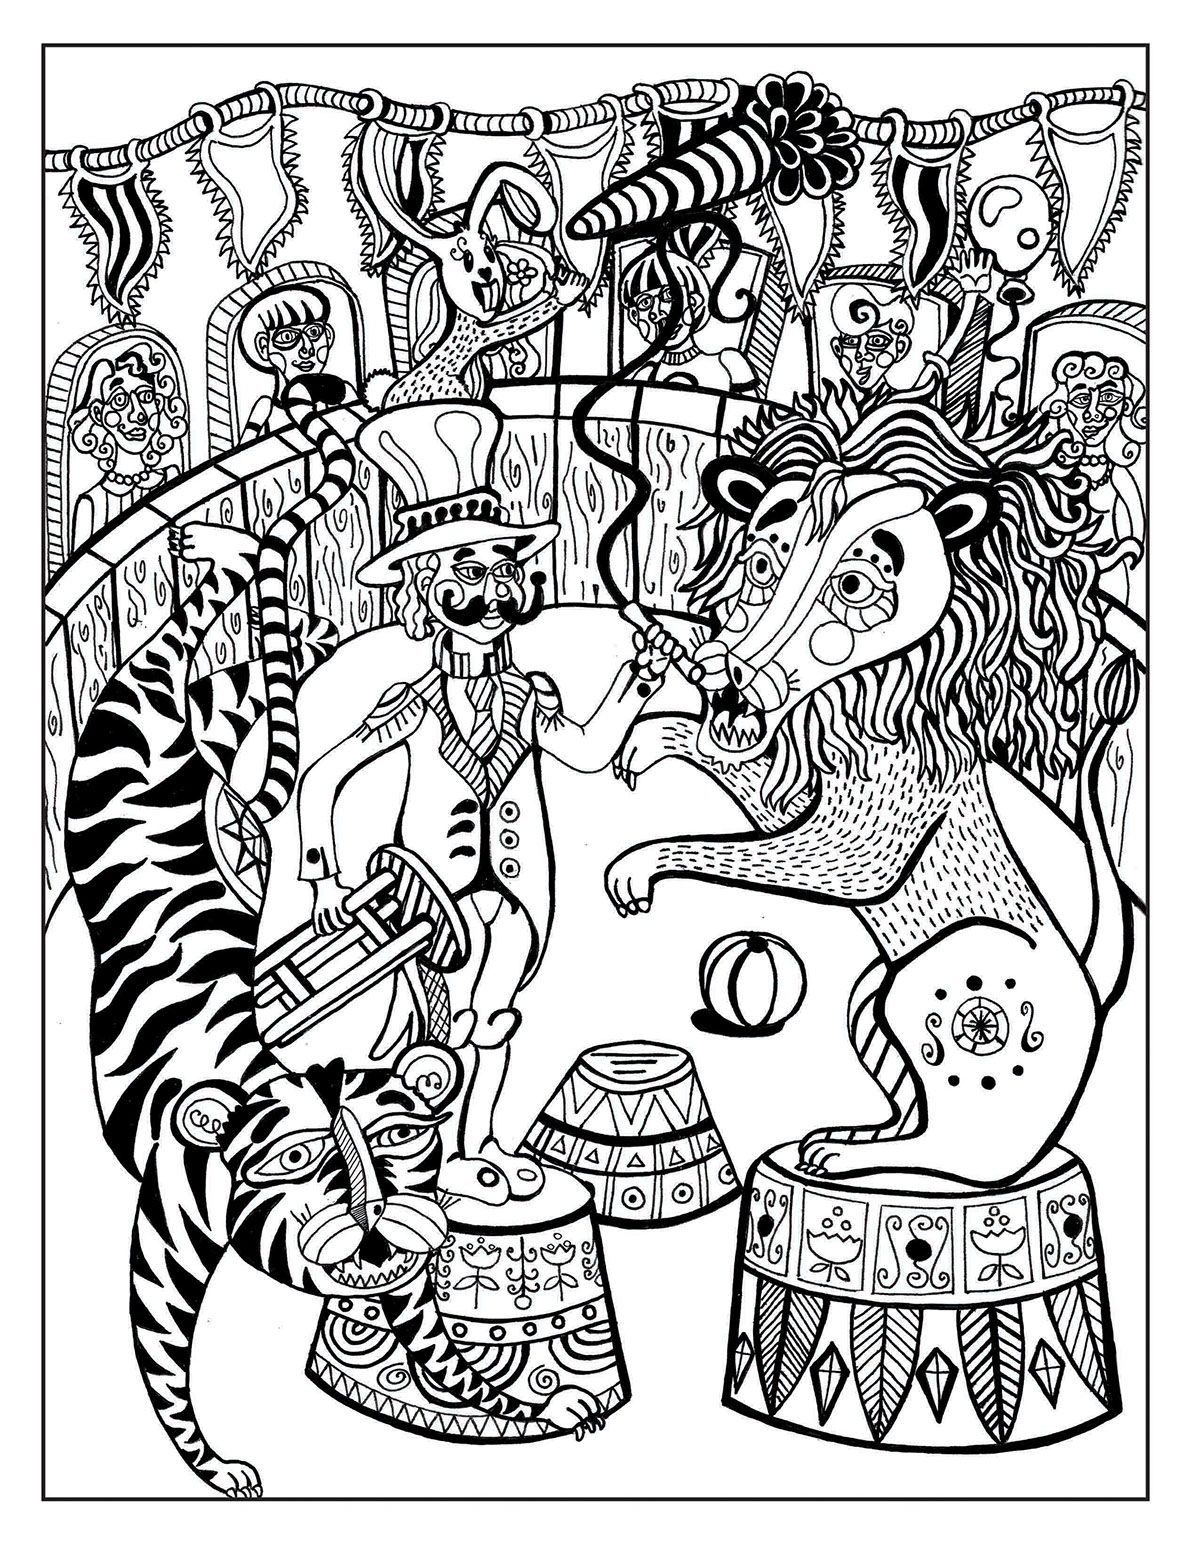 A Day At The Circus Coloring Page On Behance Coloring Book Pages Pattern Coloring Pages Coloring Books